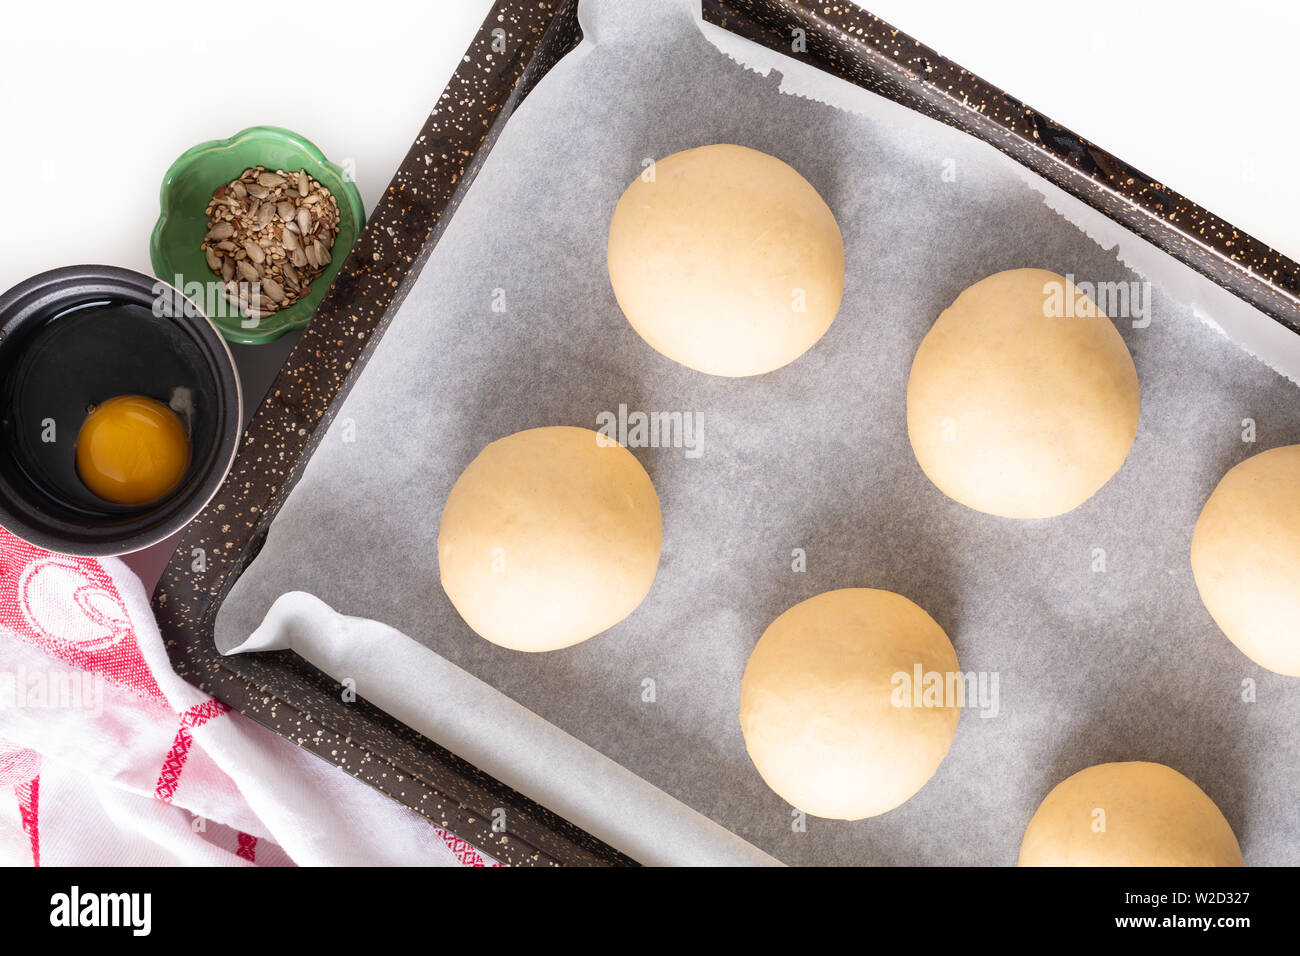 Food concept Proving, Proofing yeast dough of hamburger buns